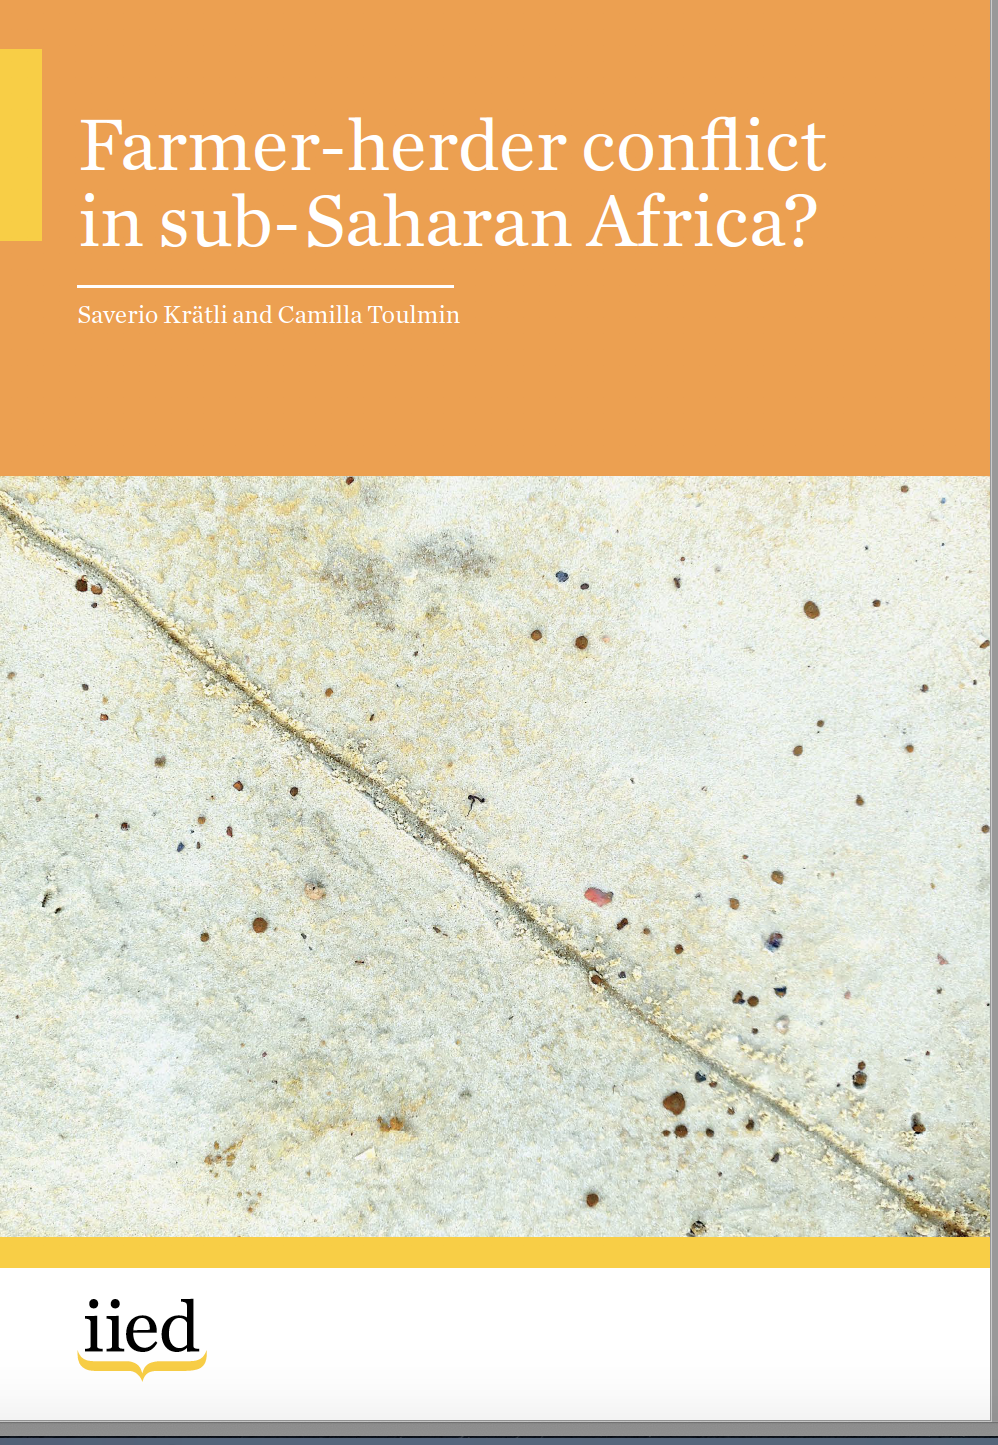 Farmer-herder conflict in sub-Saharan Africa?